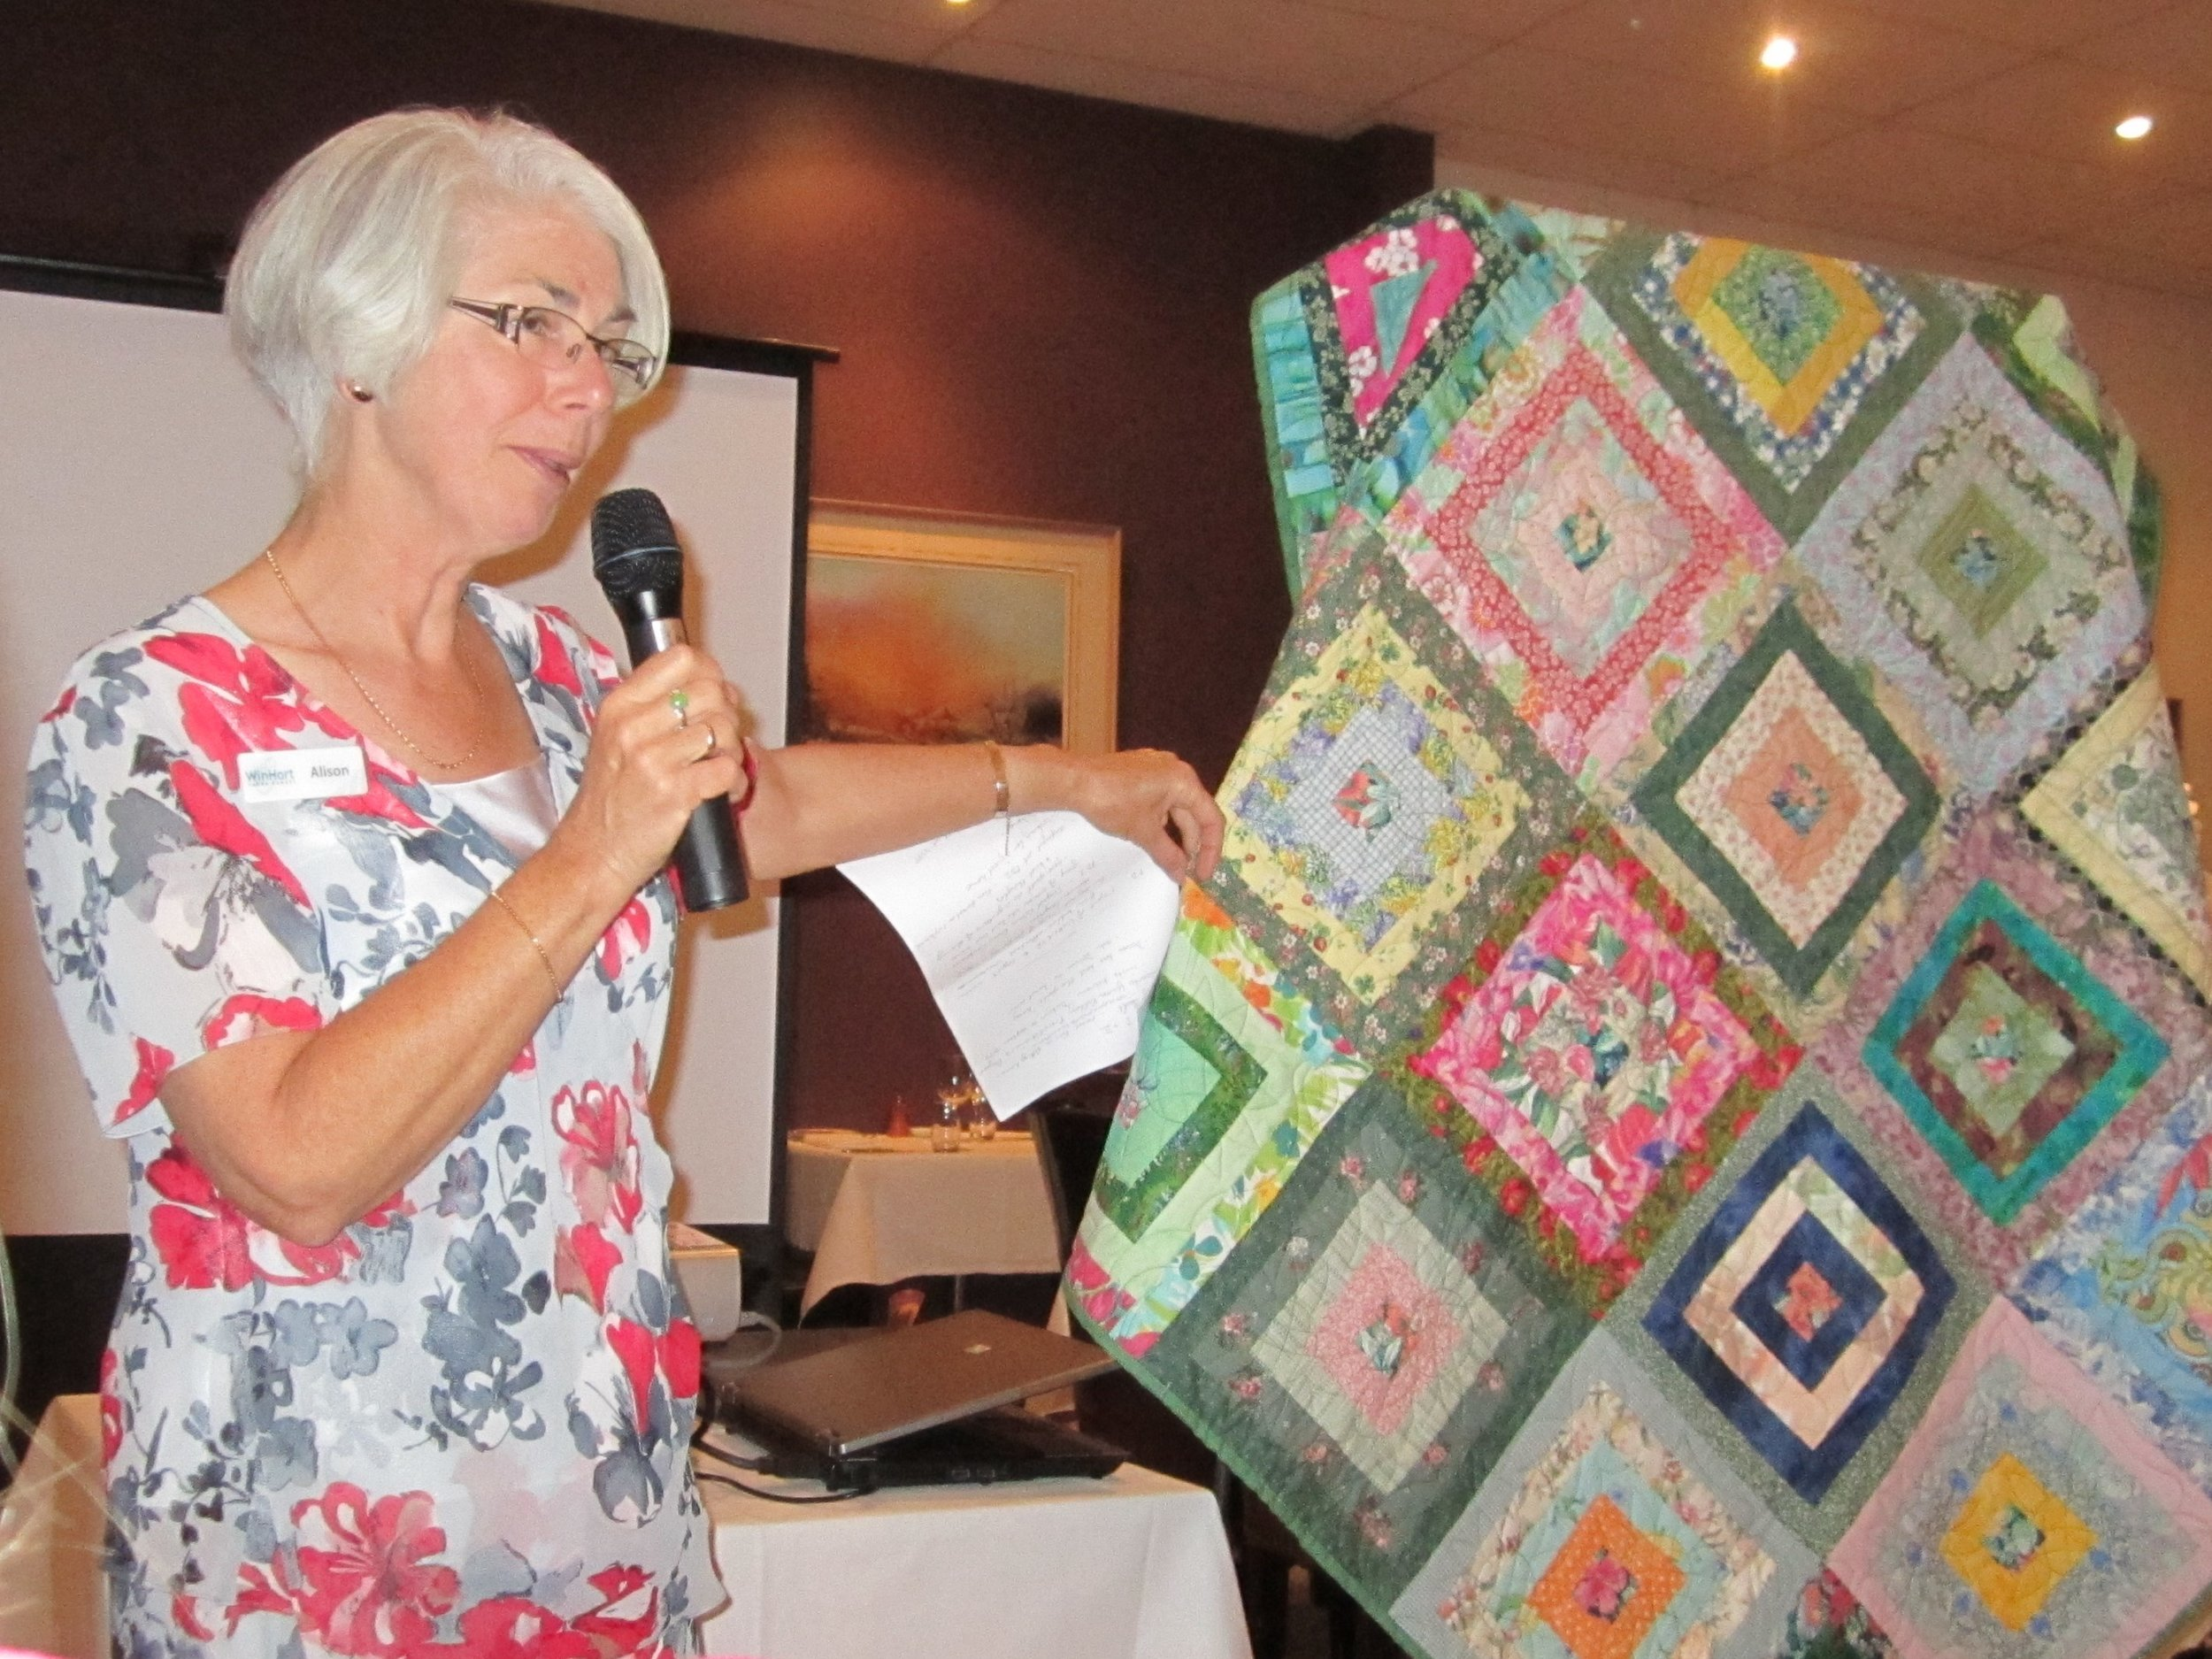 Alison Brinson with the Singed Sisters and Solidarity and Friendship Quilt, 2011, image supplied.